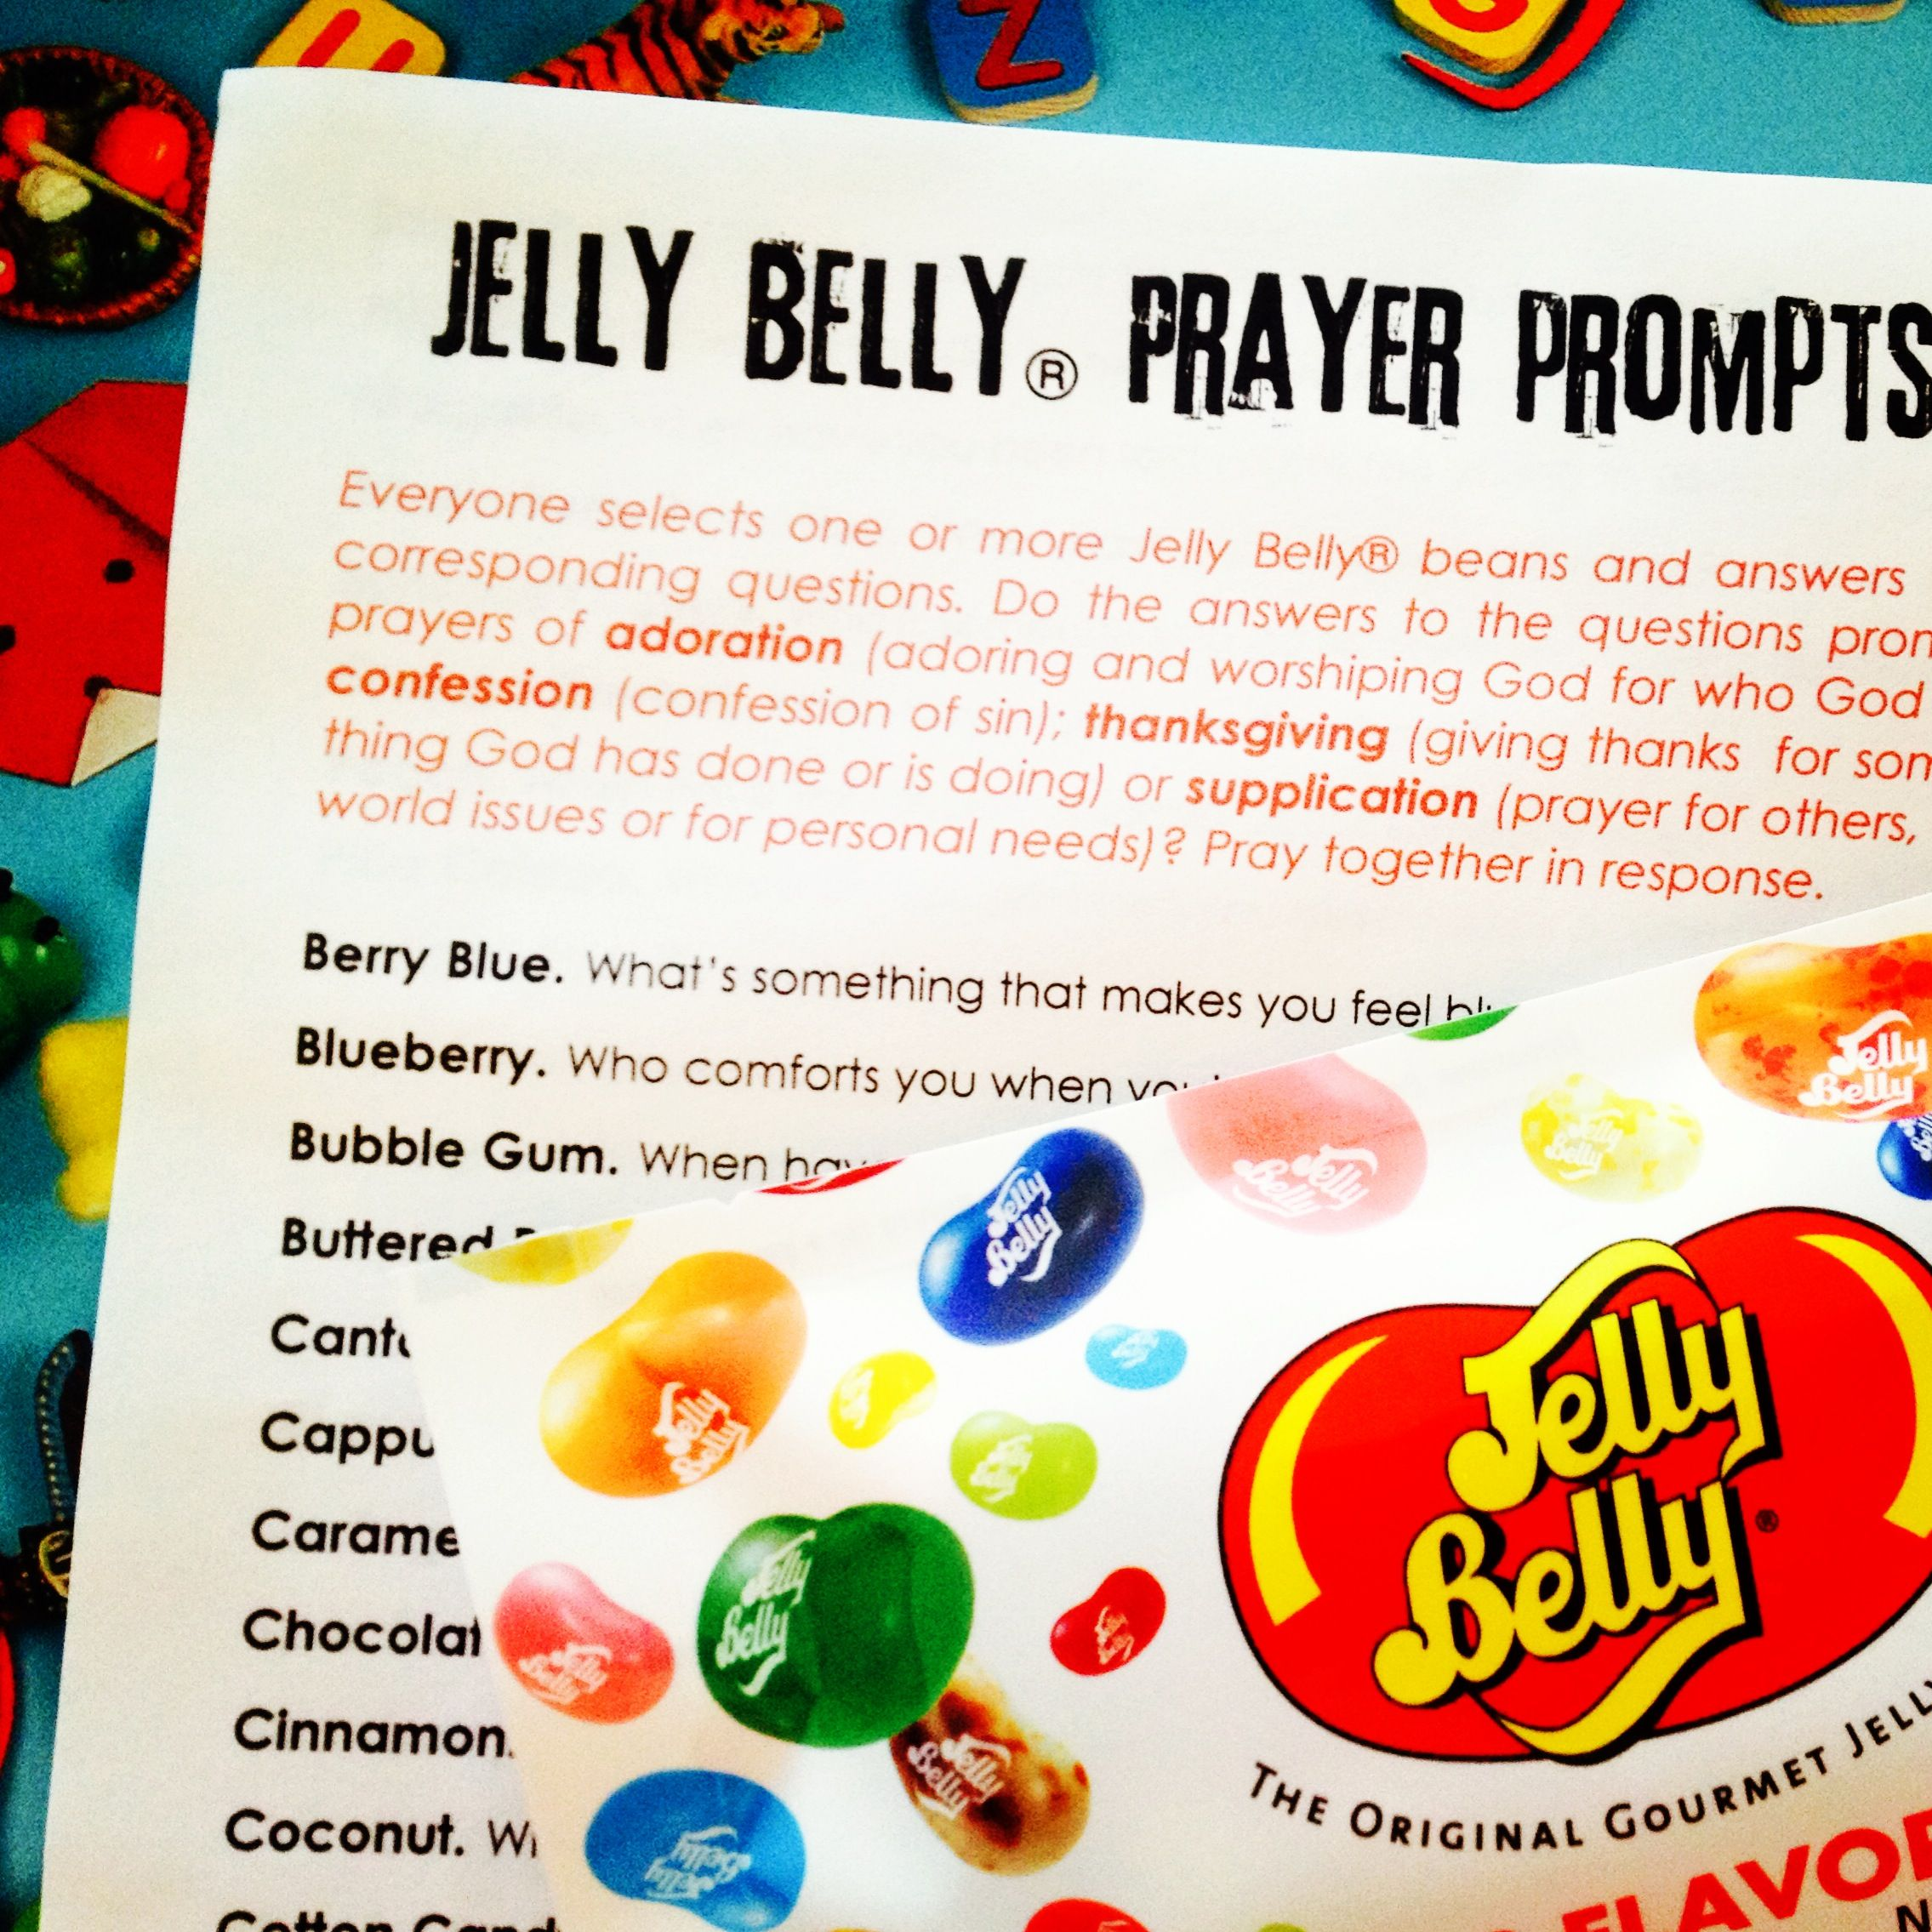 50 Days Of Easter 50 Jelly Belly Prayer Prompts Great Site For Lent